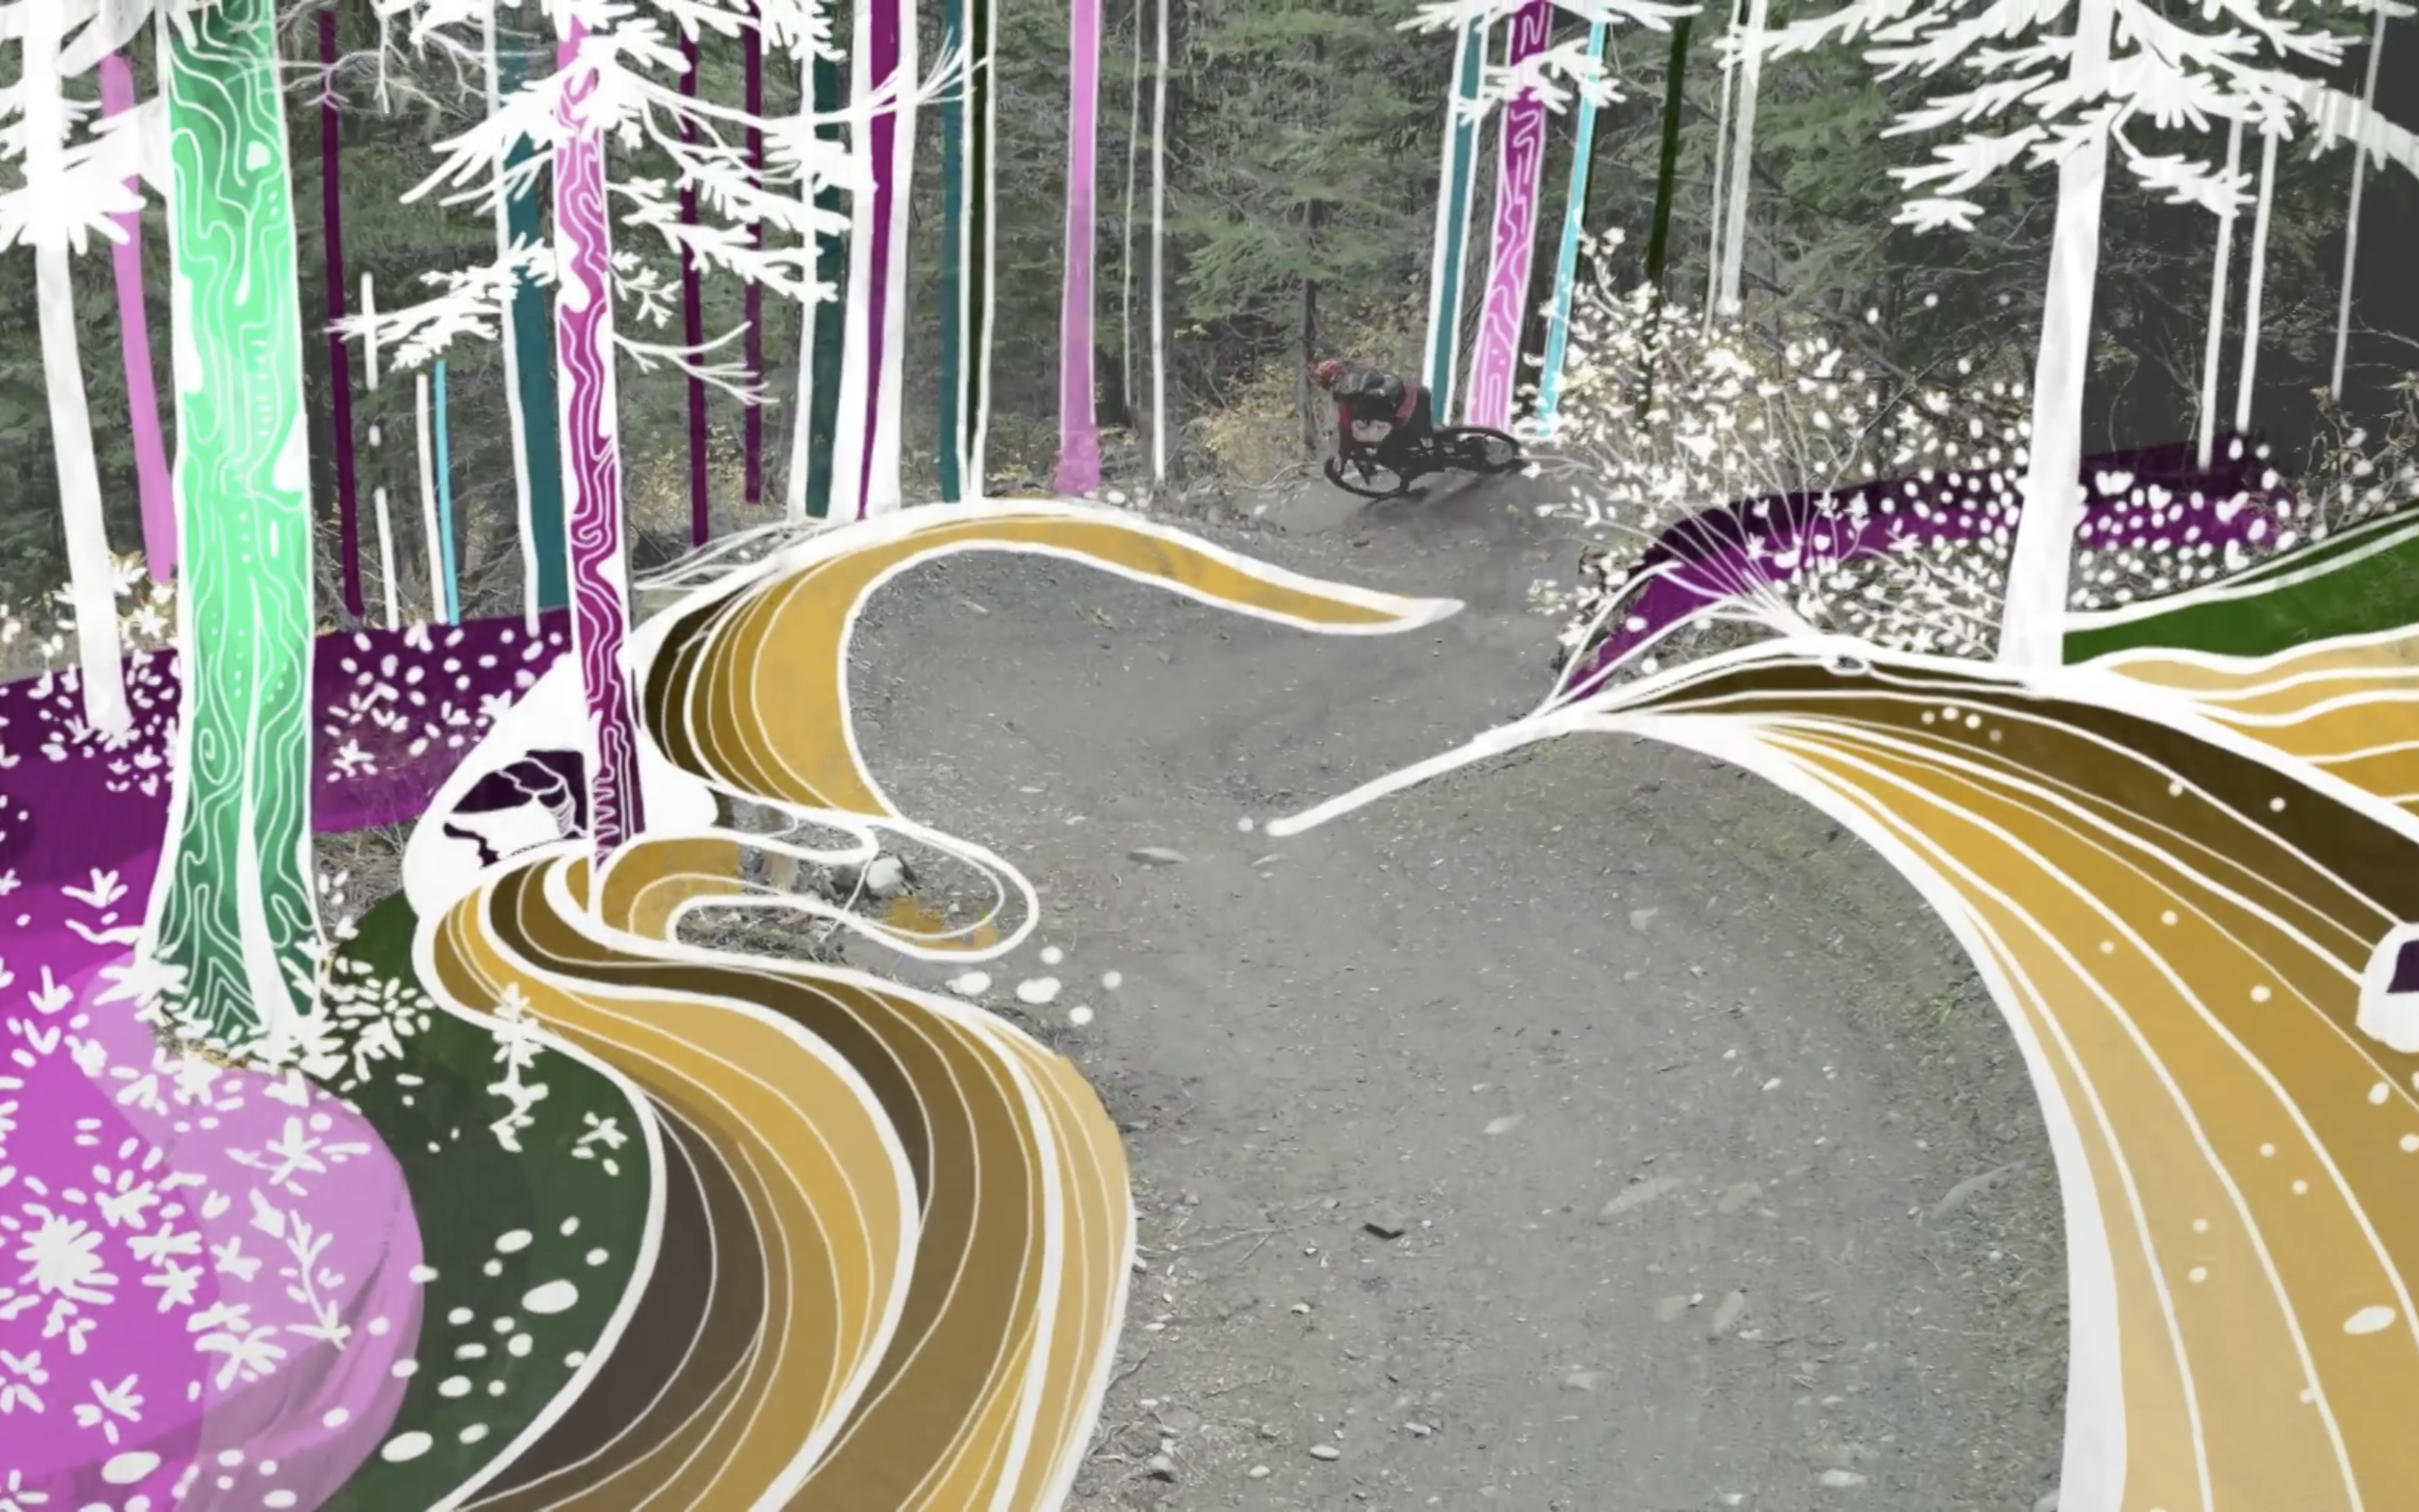 Mountain Bike Meets Painting: Micayla Gatto's Intersection